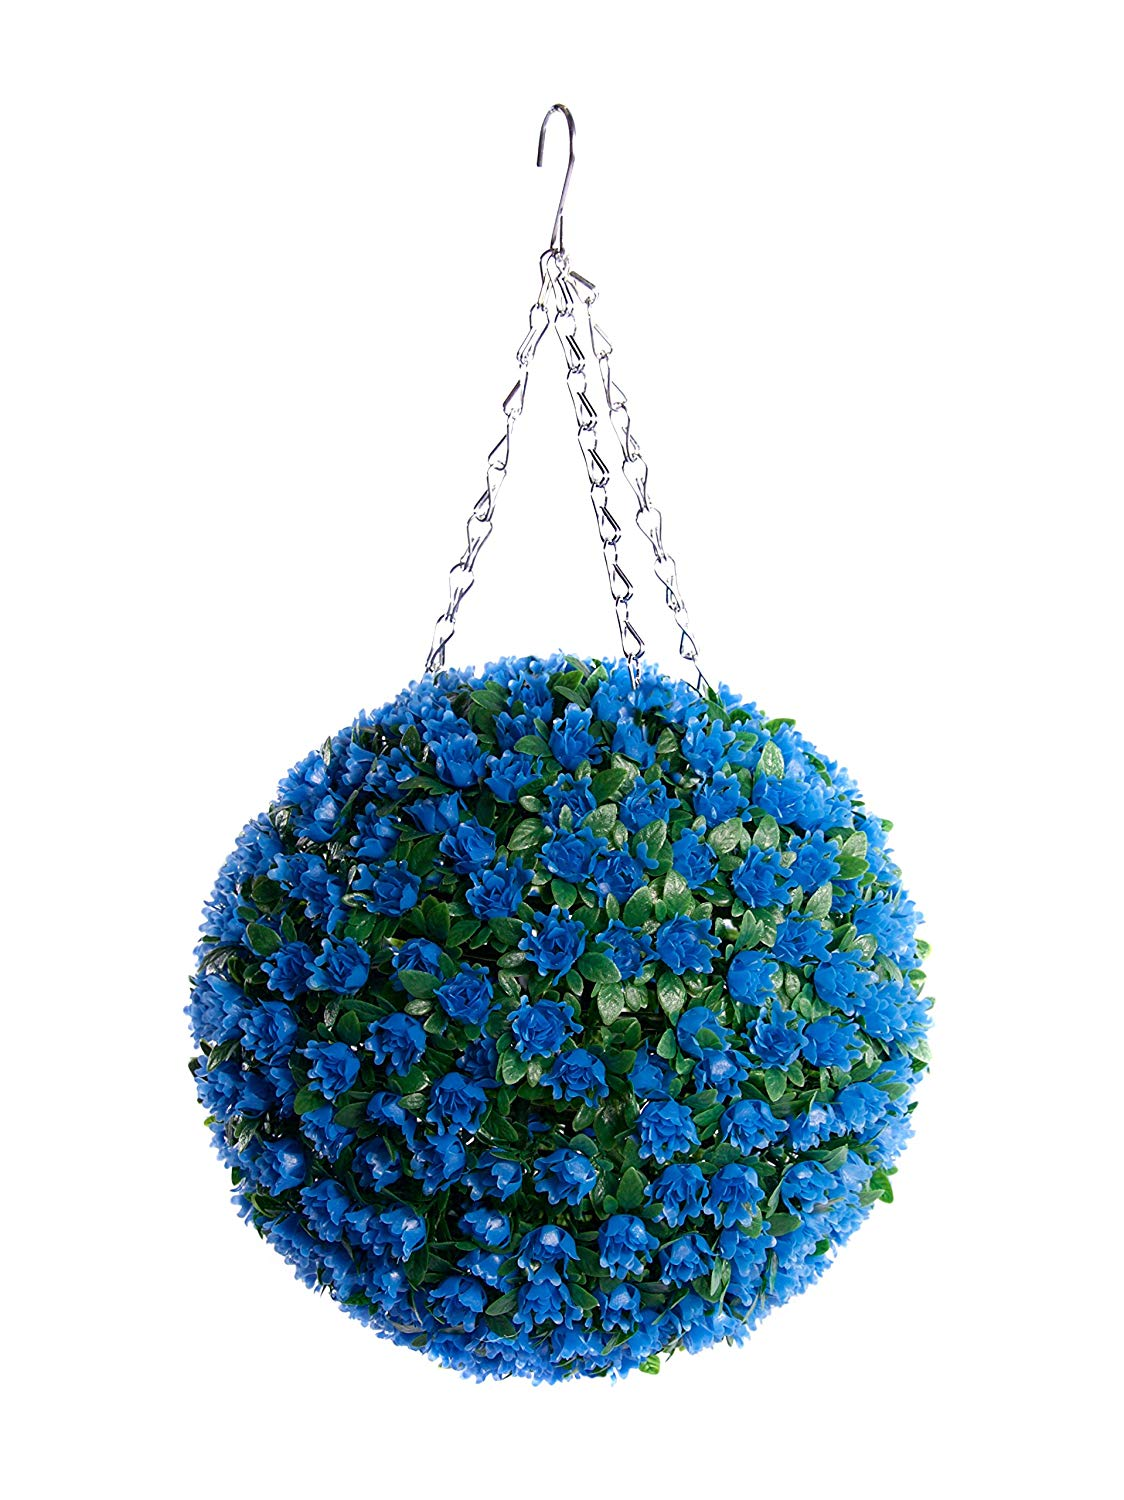 Plant Care Supplies Soil Accessories 28cm 38cm Artificial Rose Topiary Flower Ball Hanging Outdoor Christmas Wedding Kisetsu System Co Jp